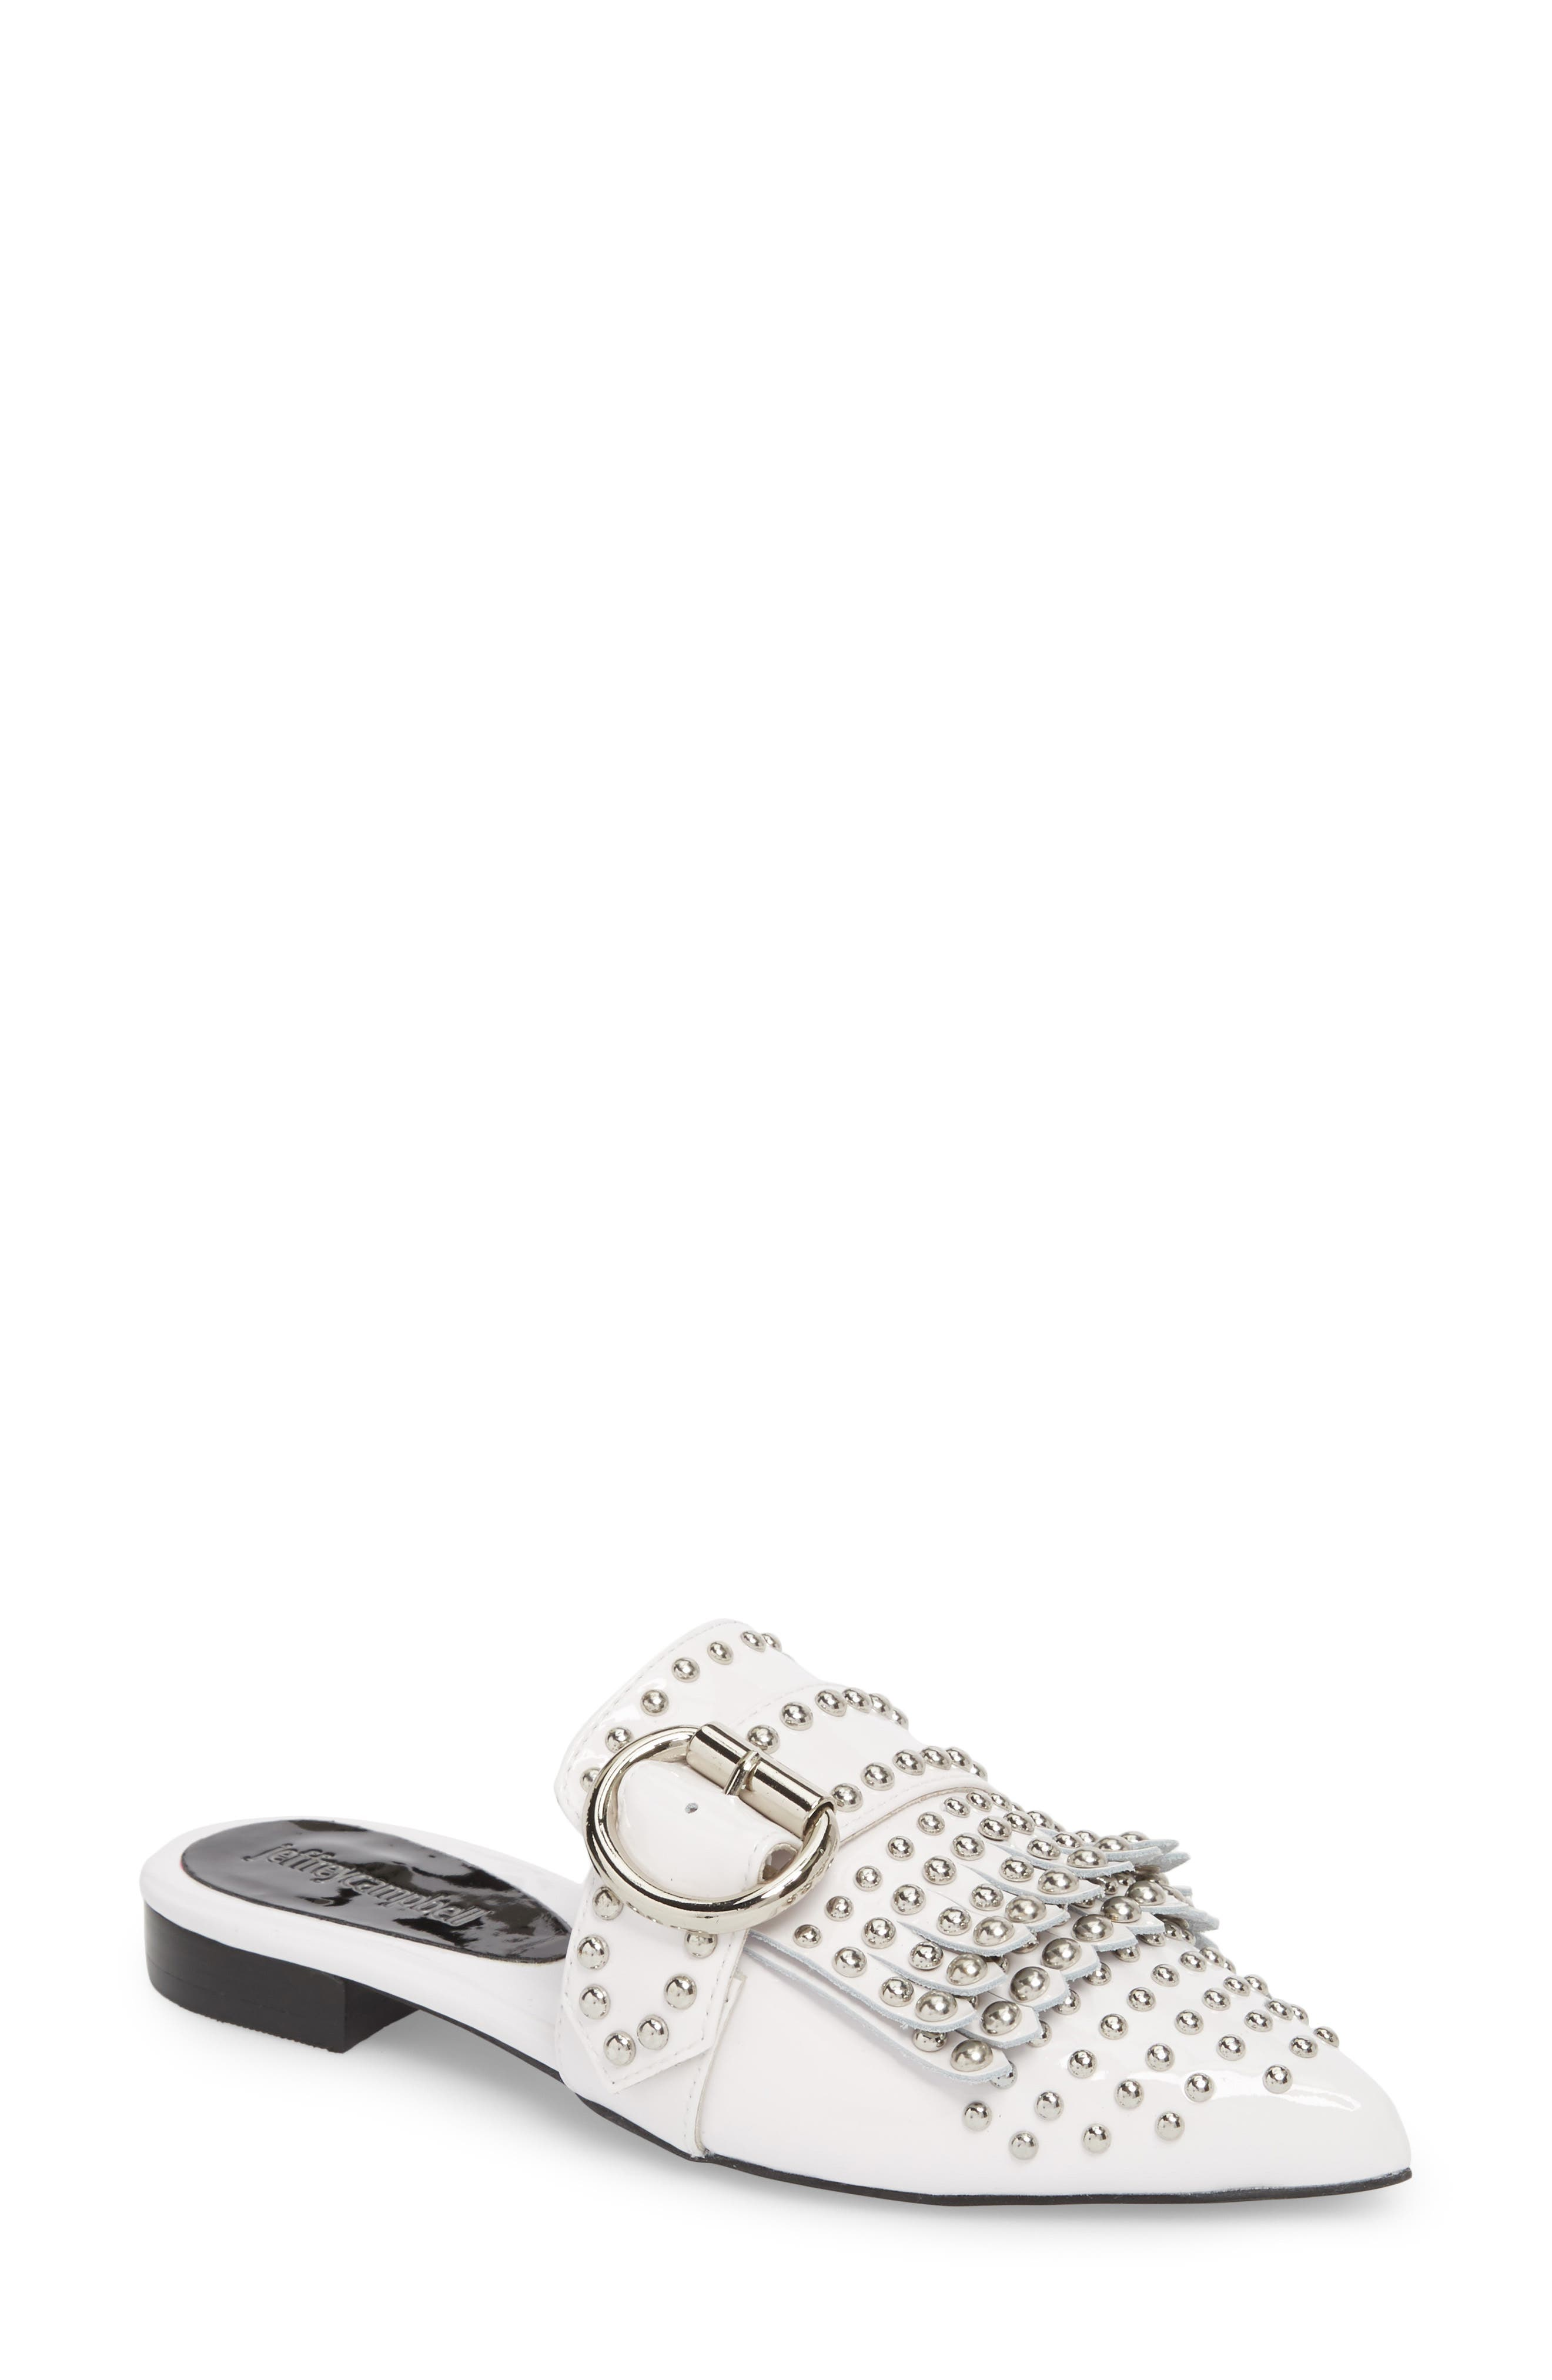 Daniel Studded Loafer Mule,                             Main thumbnail 1, color,                             White Patent